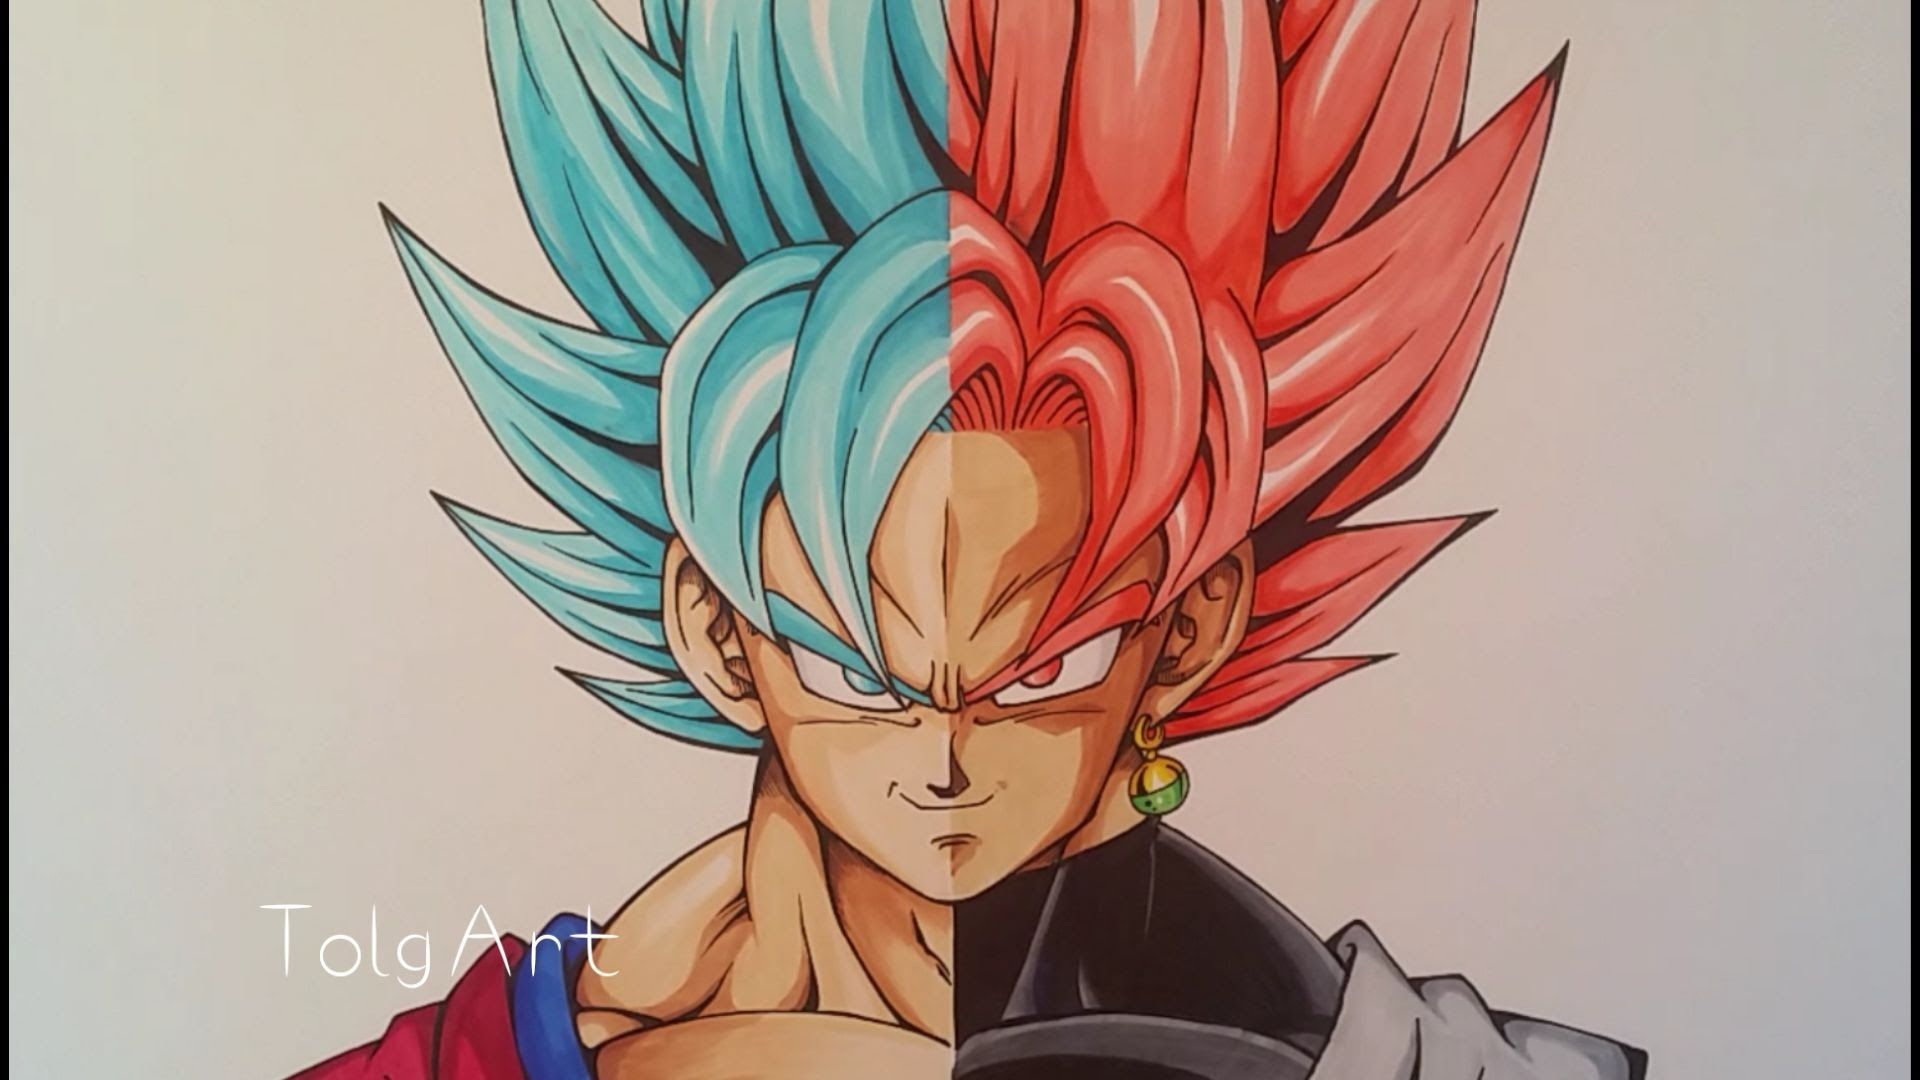 Drawing Goku Vs Black Goku Super Saiyan Blue Vs Rose